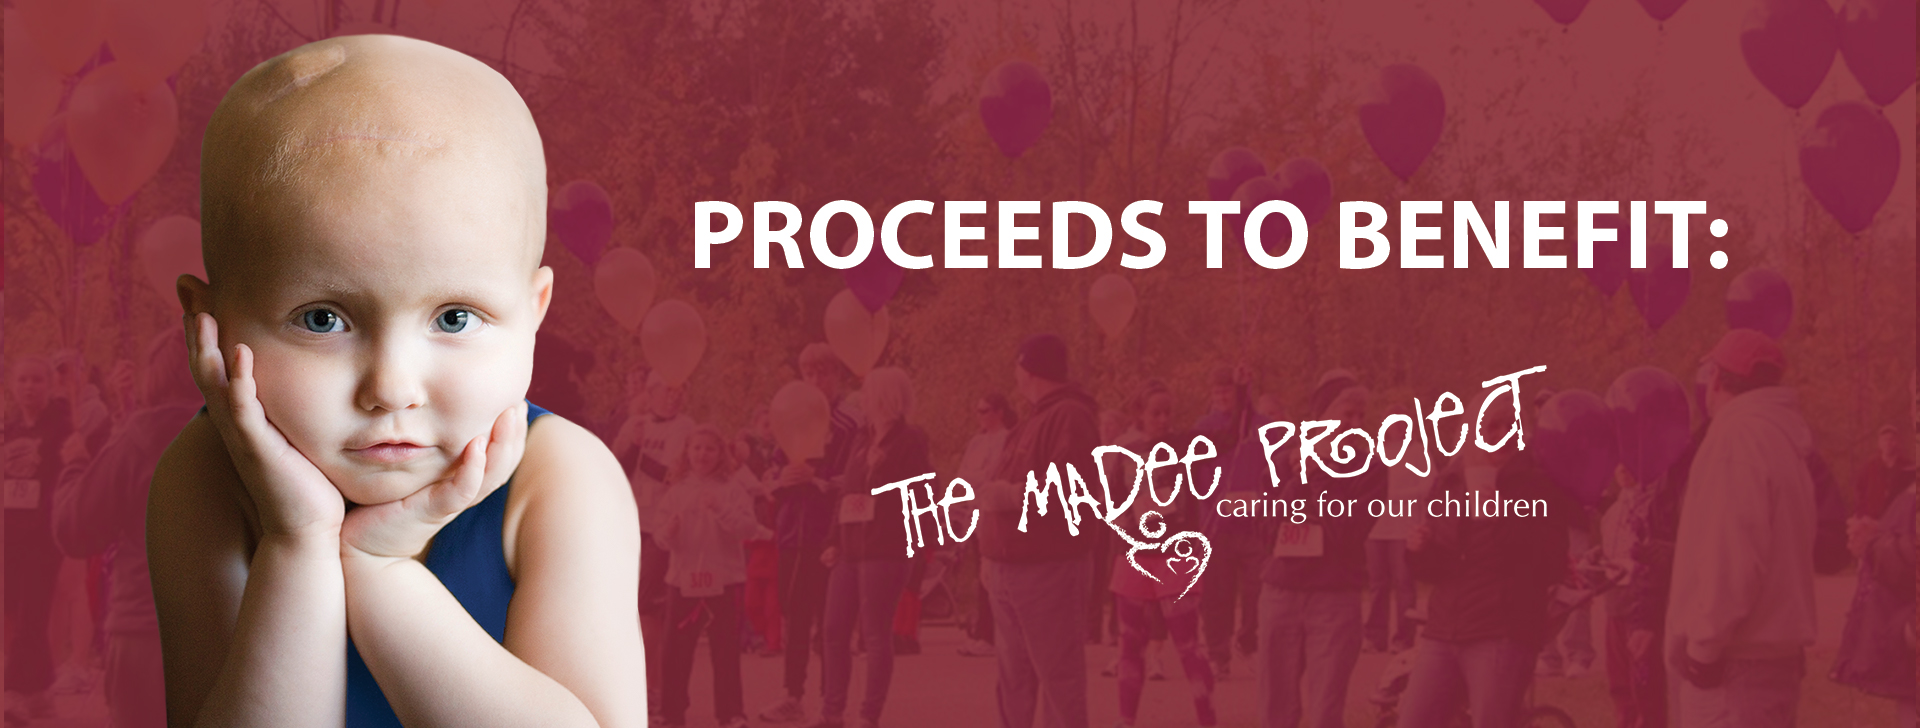 Proceeds benefit The Madee Project